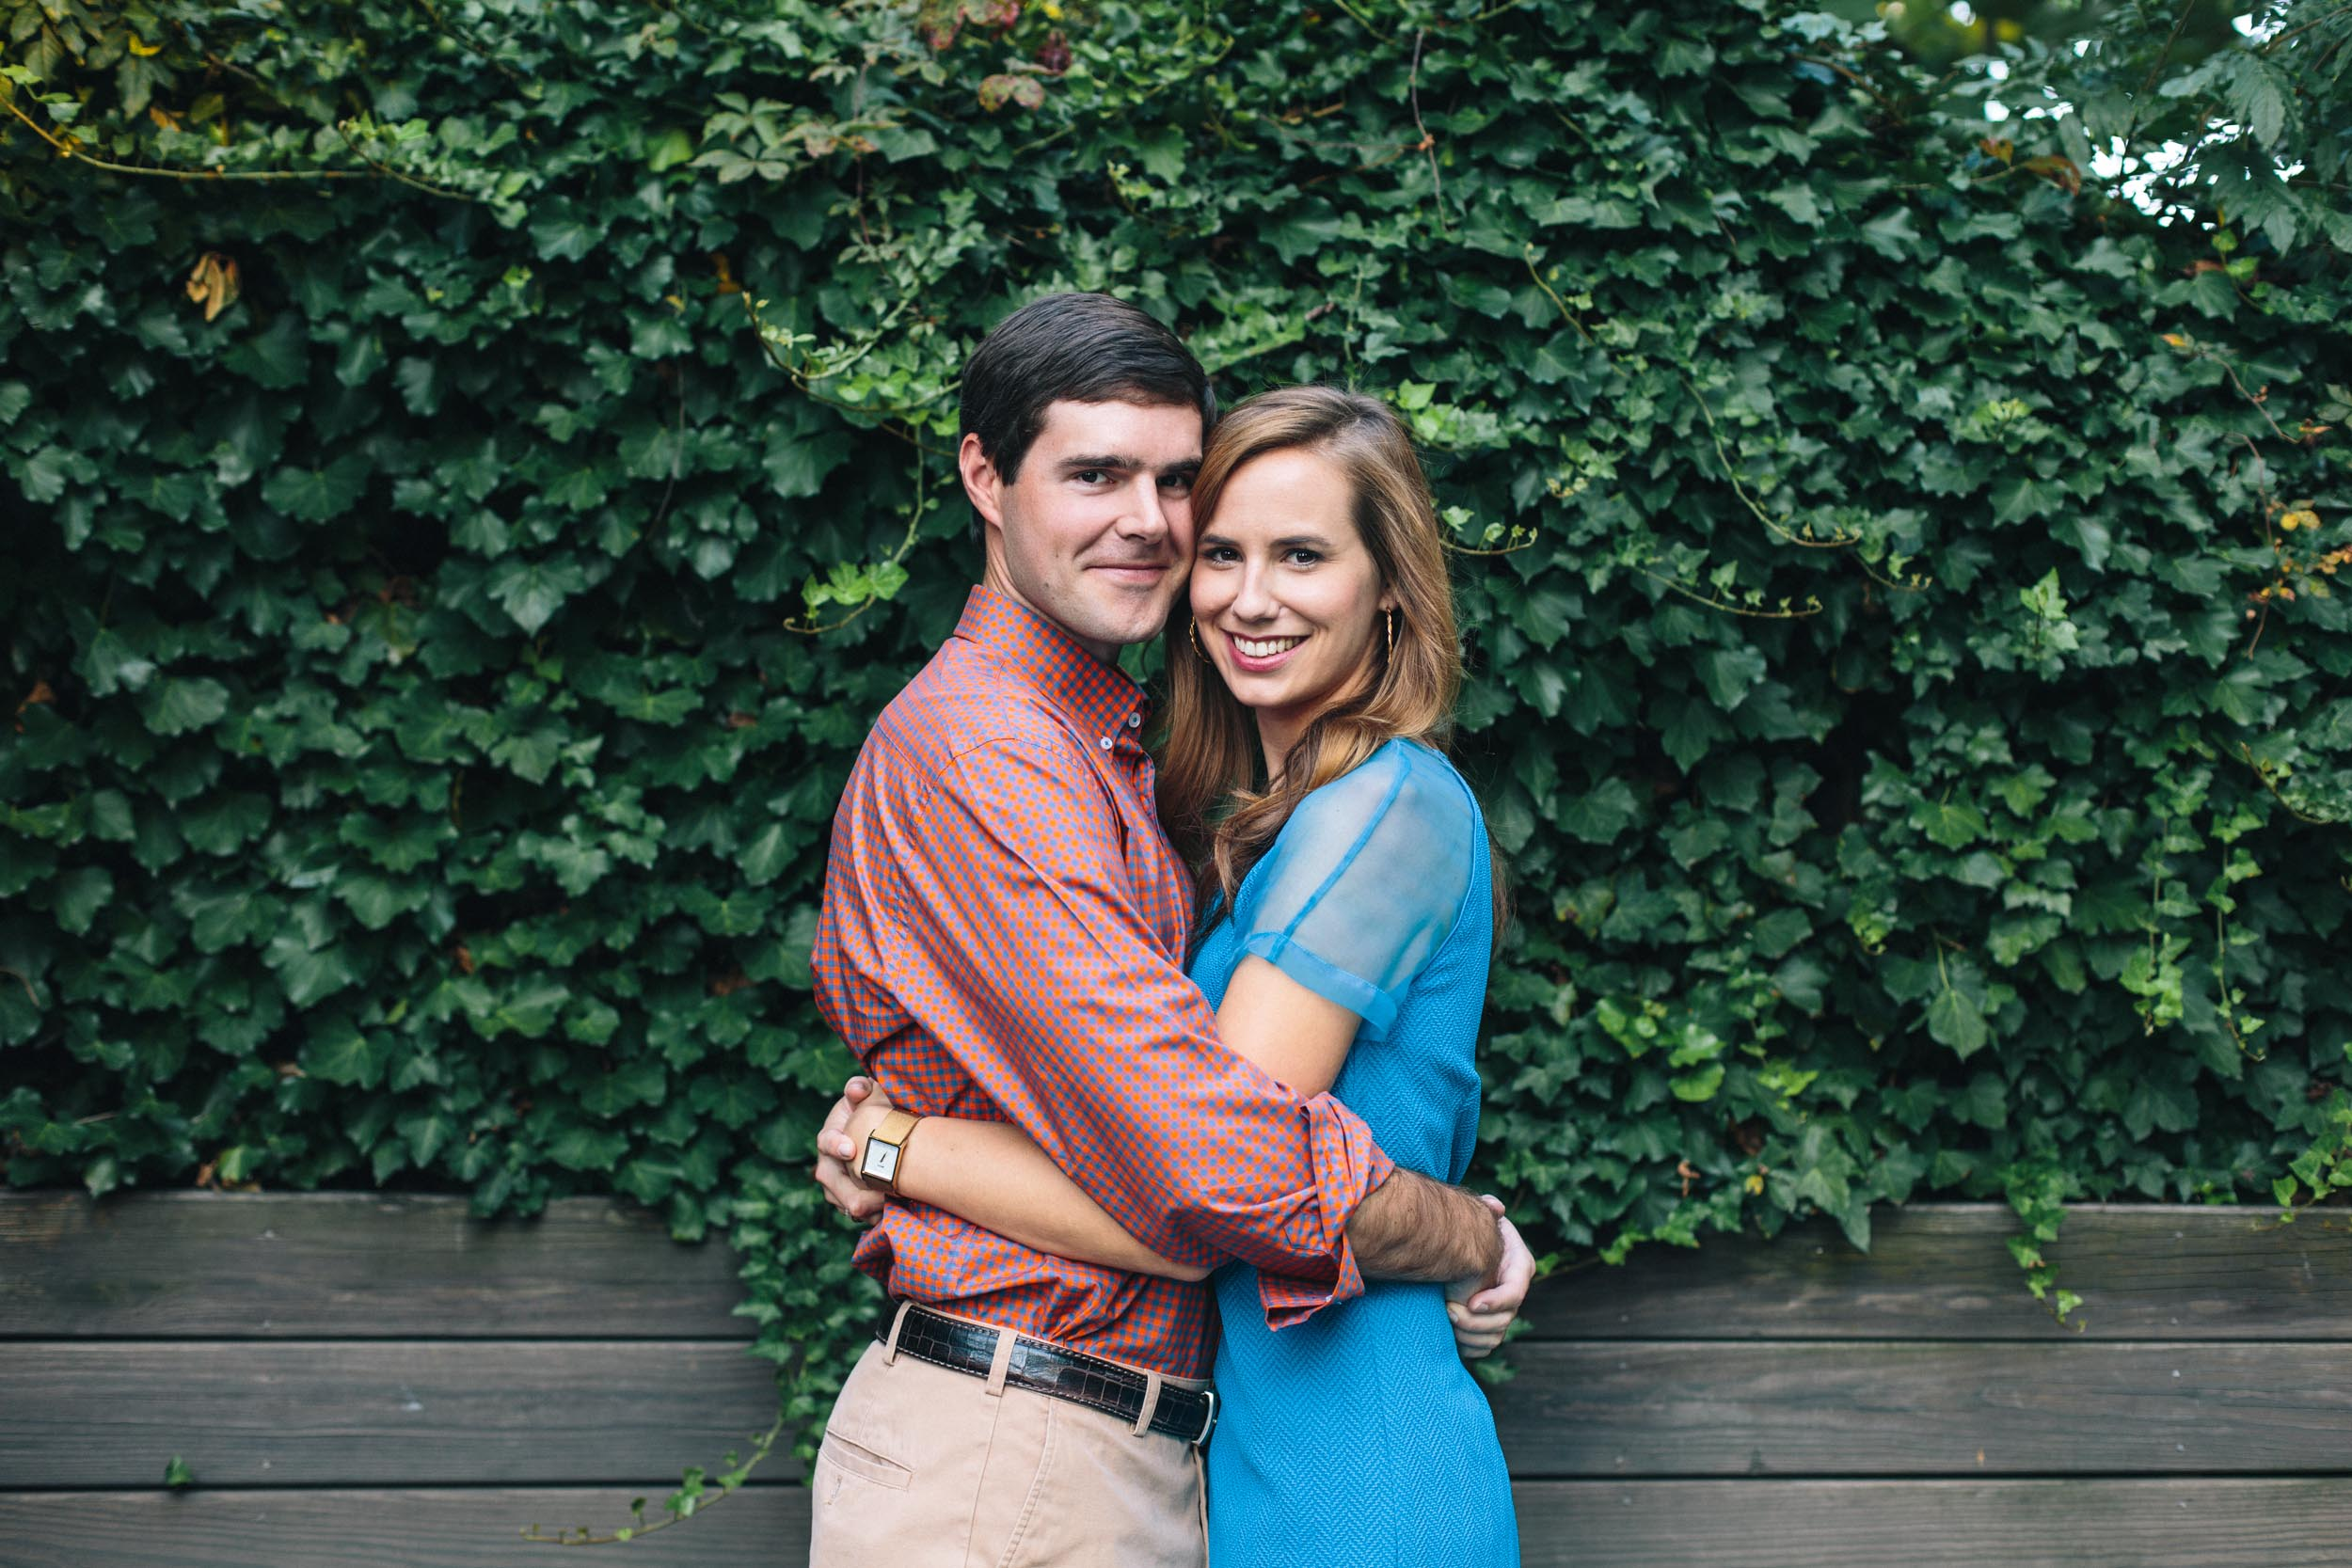 jimmy-rowalt-atlanta-engagement-photography-001.jpg